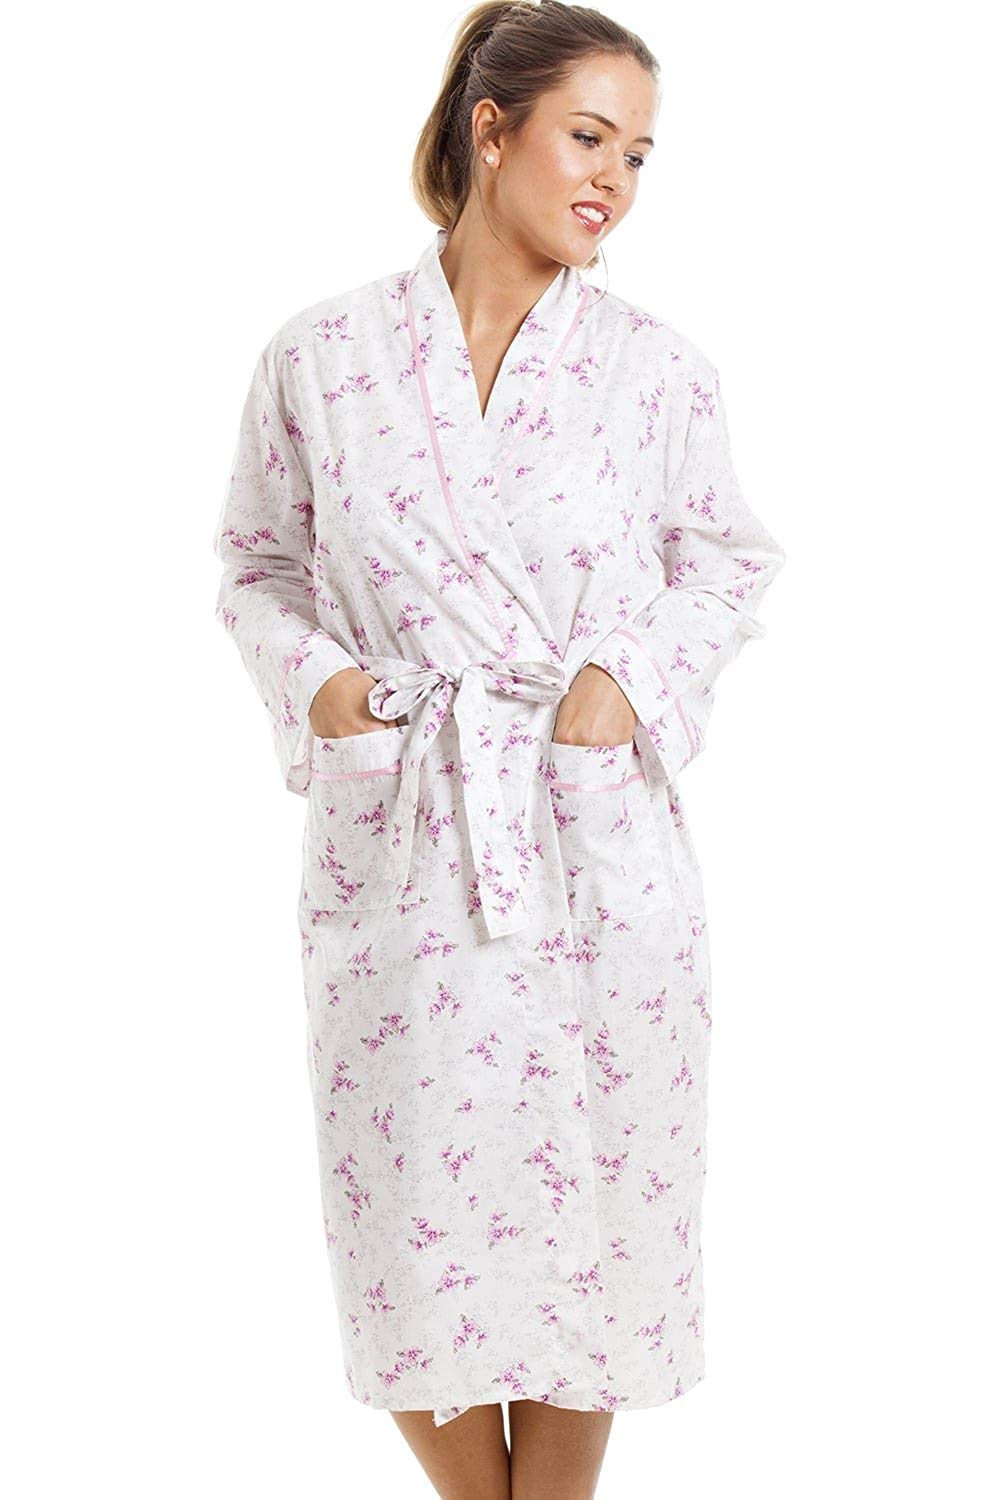 Cheap White Fluffy Dressing Gown, find White Fluffy Dressing Gown ...